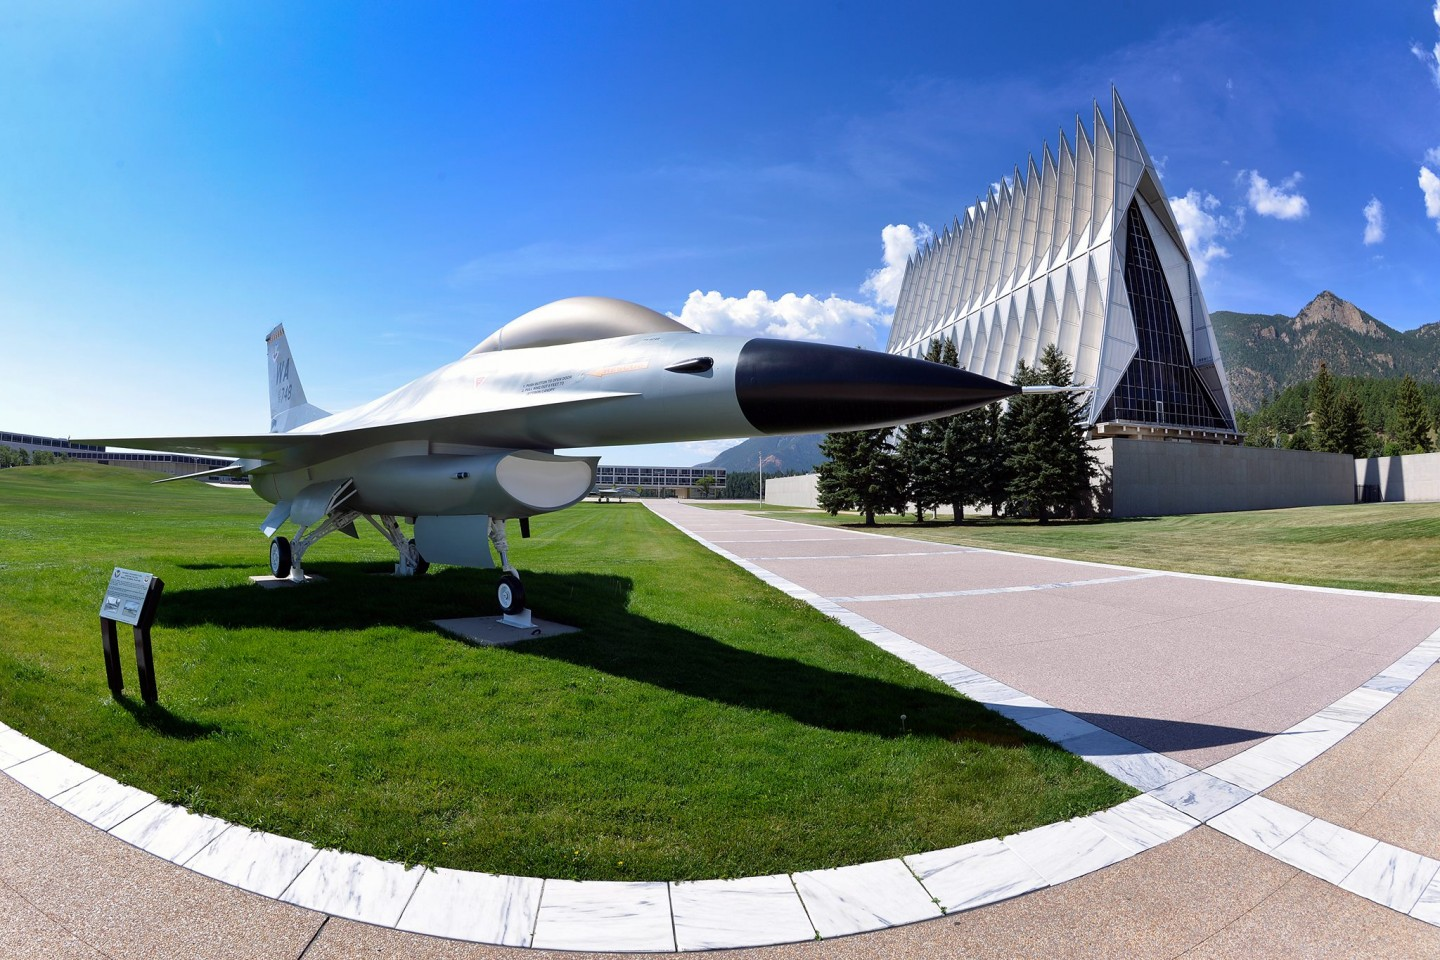 United States Air Force Academy(空軍士官学校)